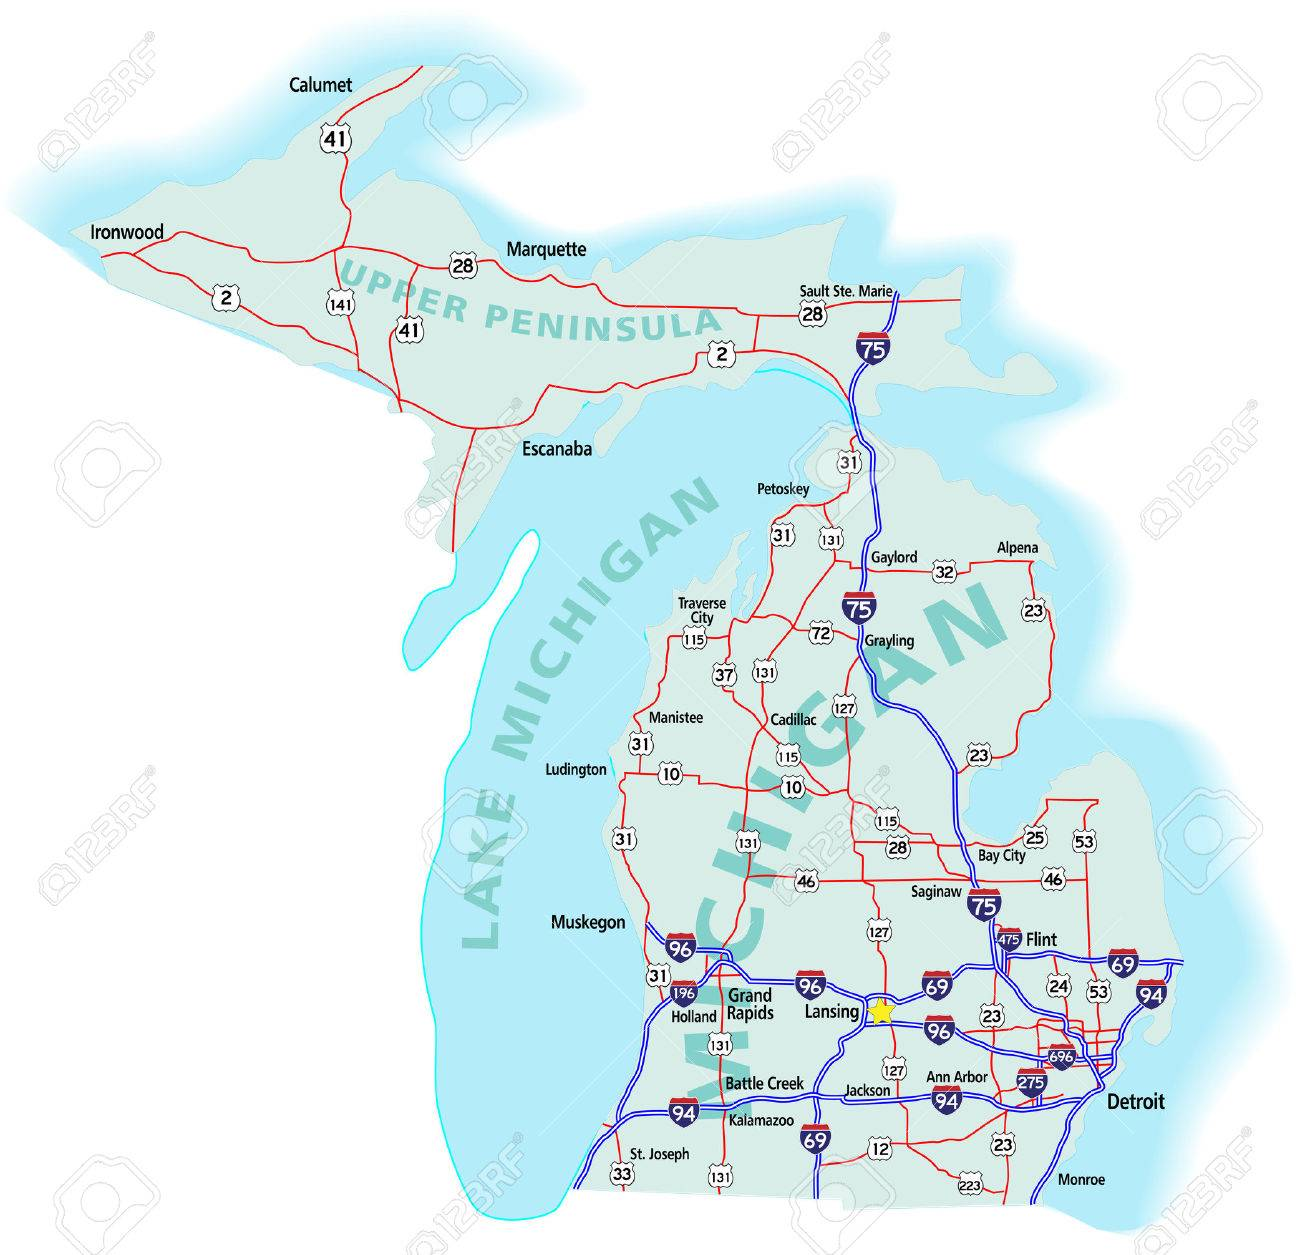 Michigan State Road Map With Interstates US Highways And State - Michigan state map